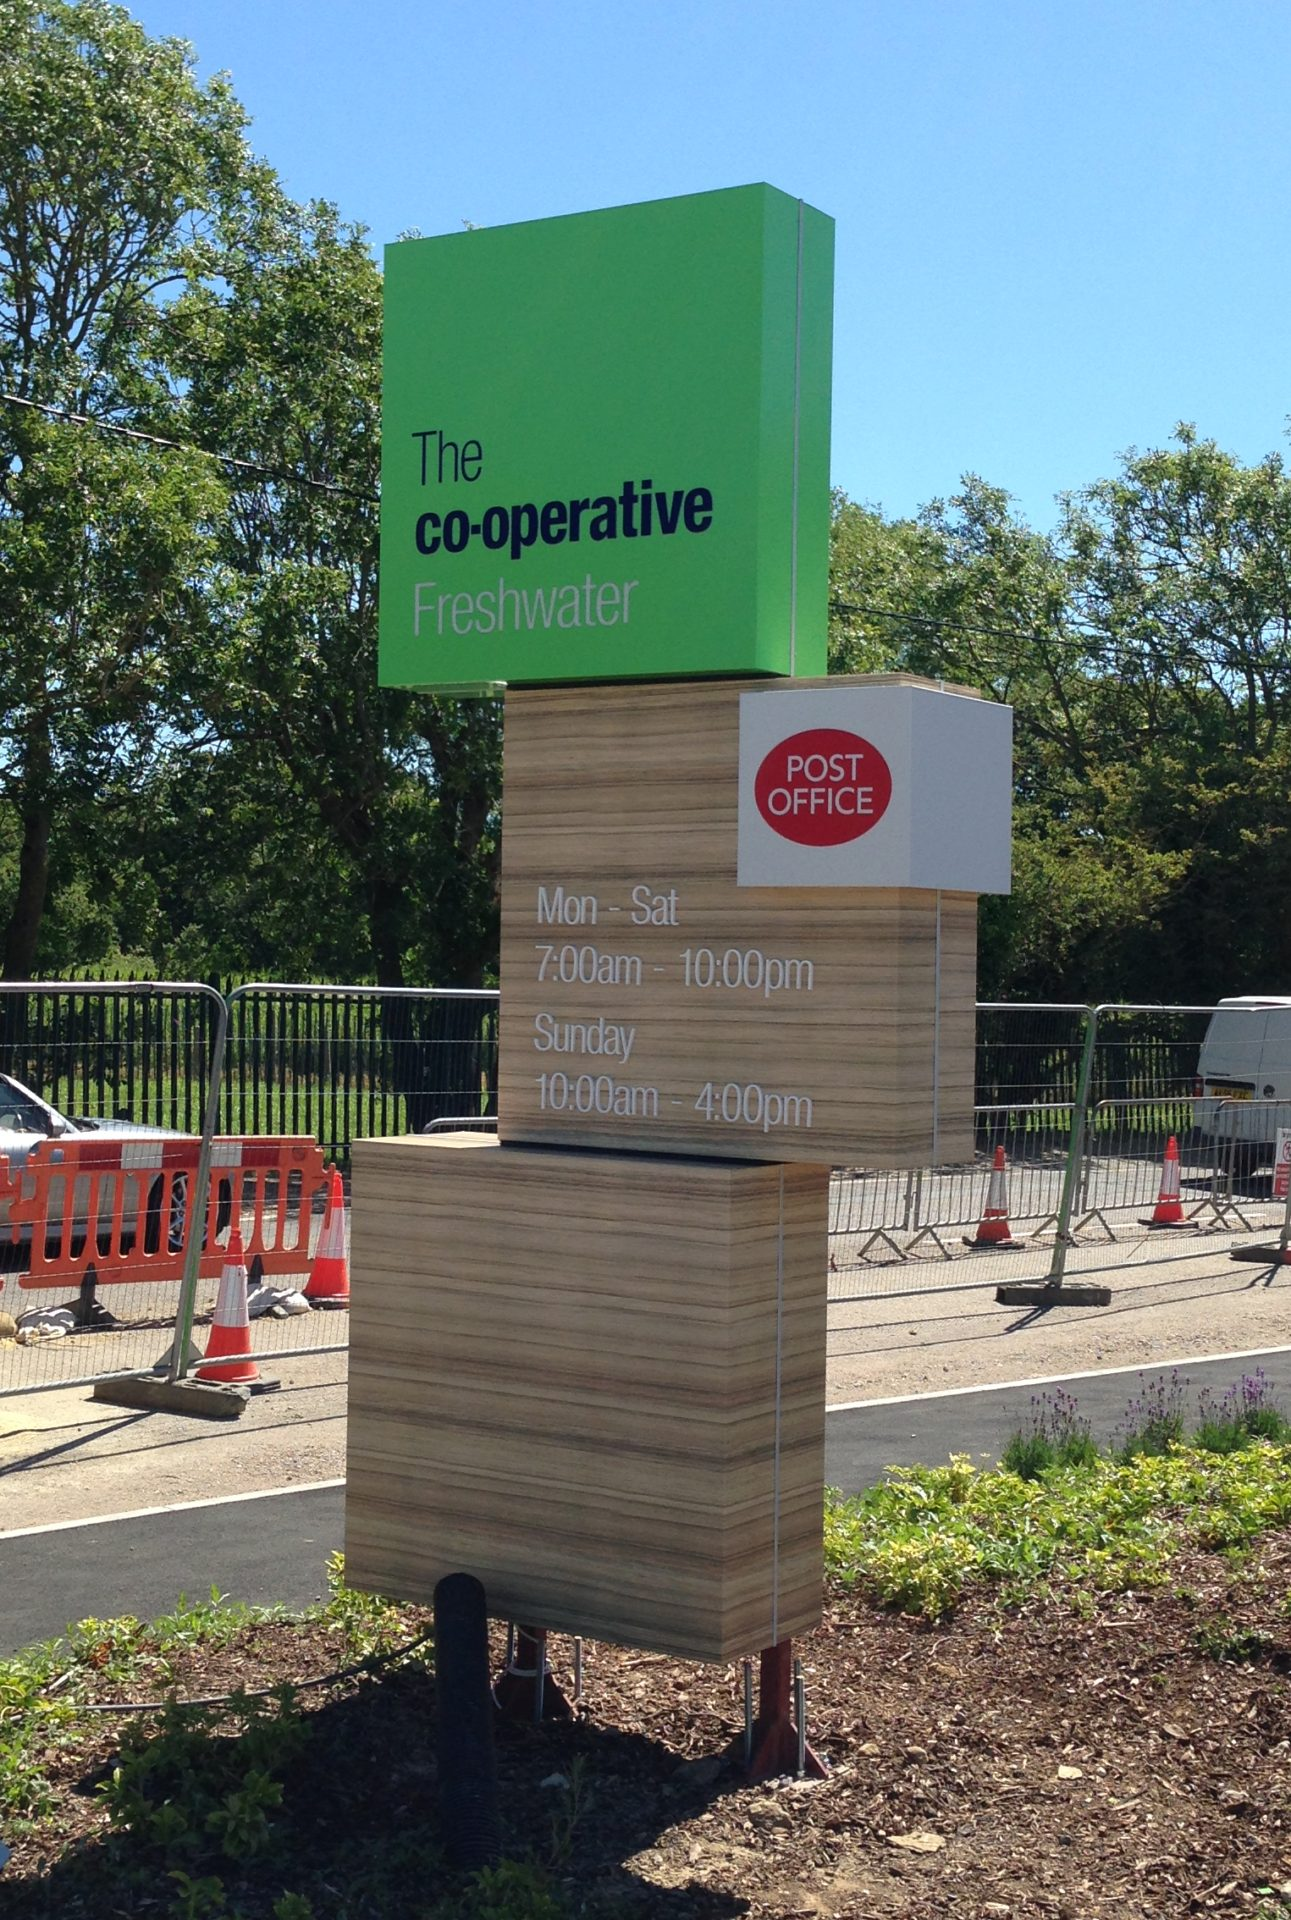 The Co-operative Freshwater standalone signage